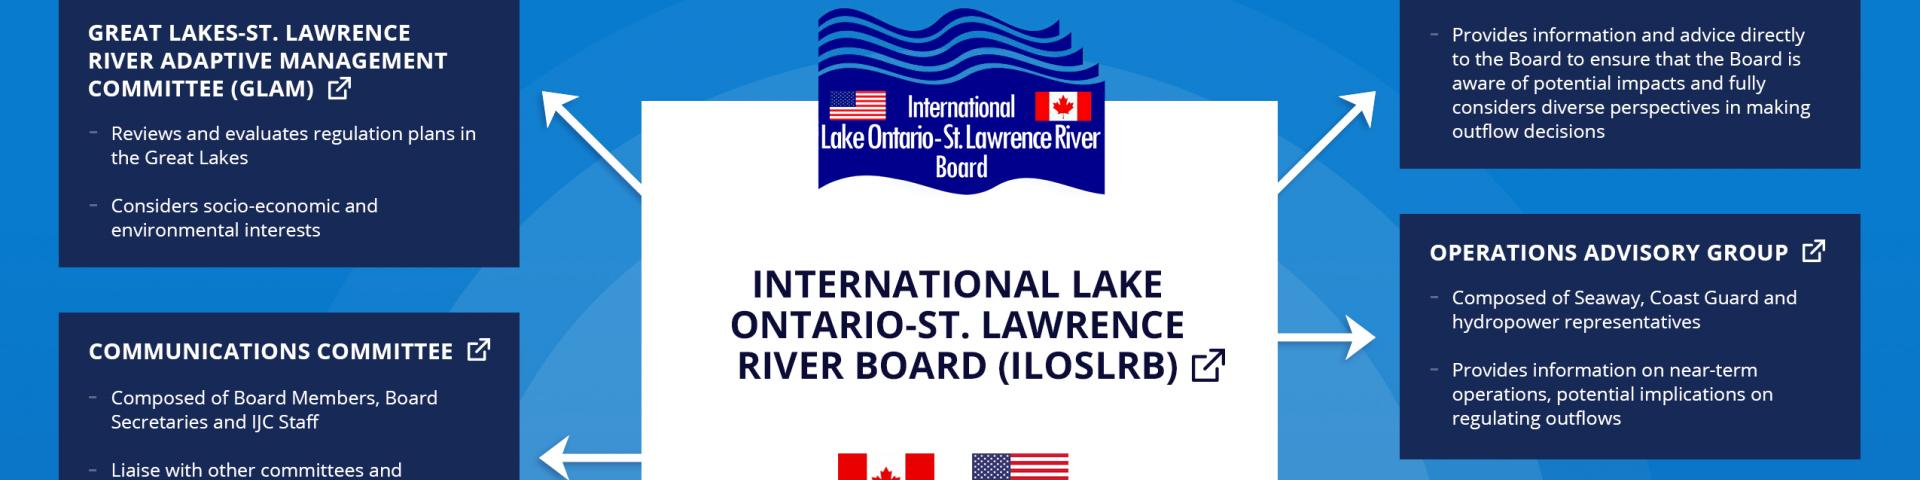 Infographic explaining the roles and responsibilities of the key players involved in the regulation of Lake Ontario and the St. Lawrence River